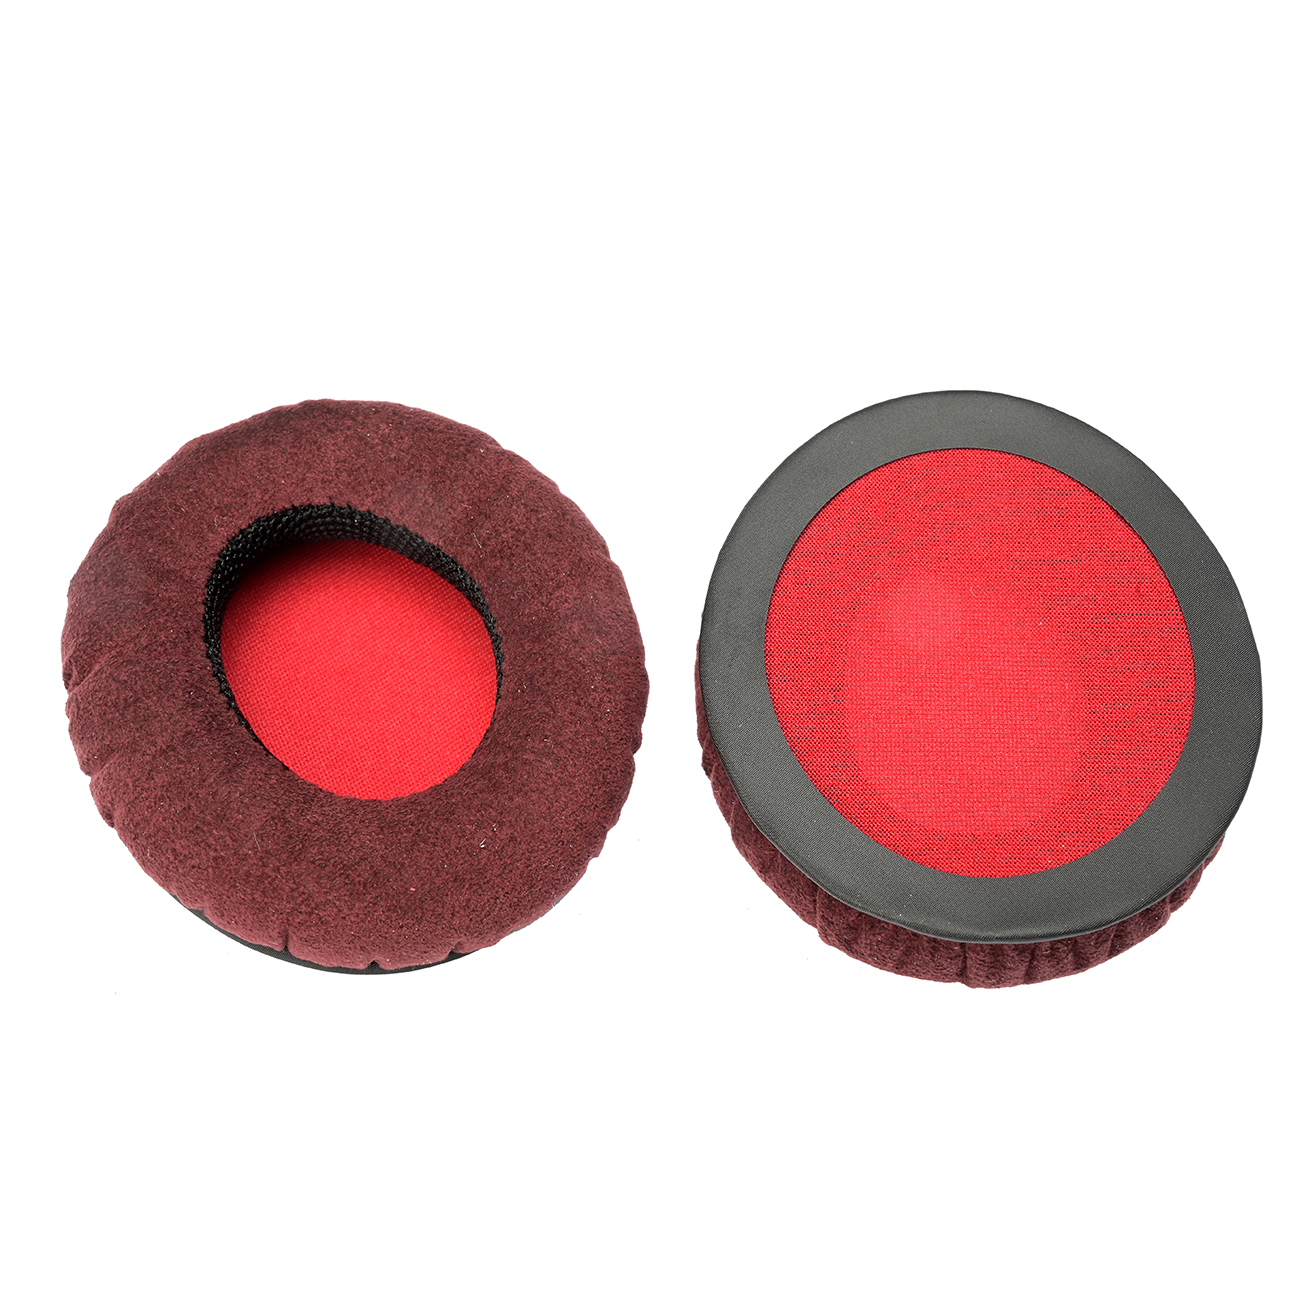 Ear pads, pink